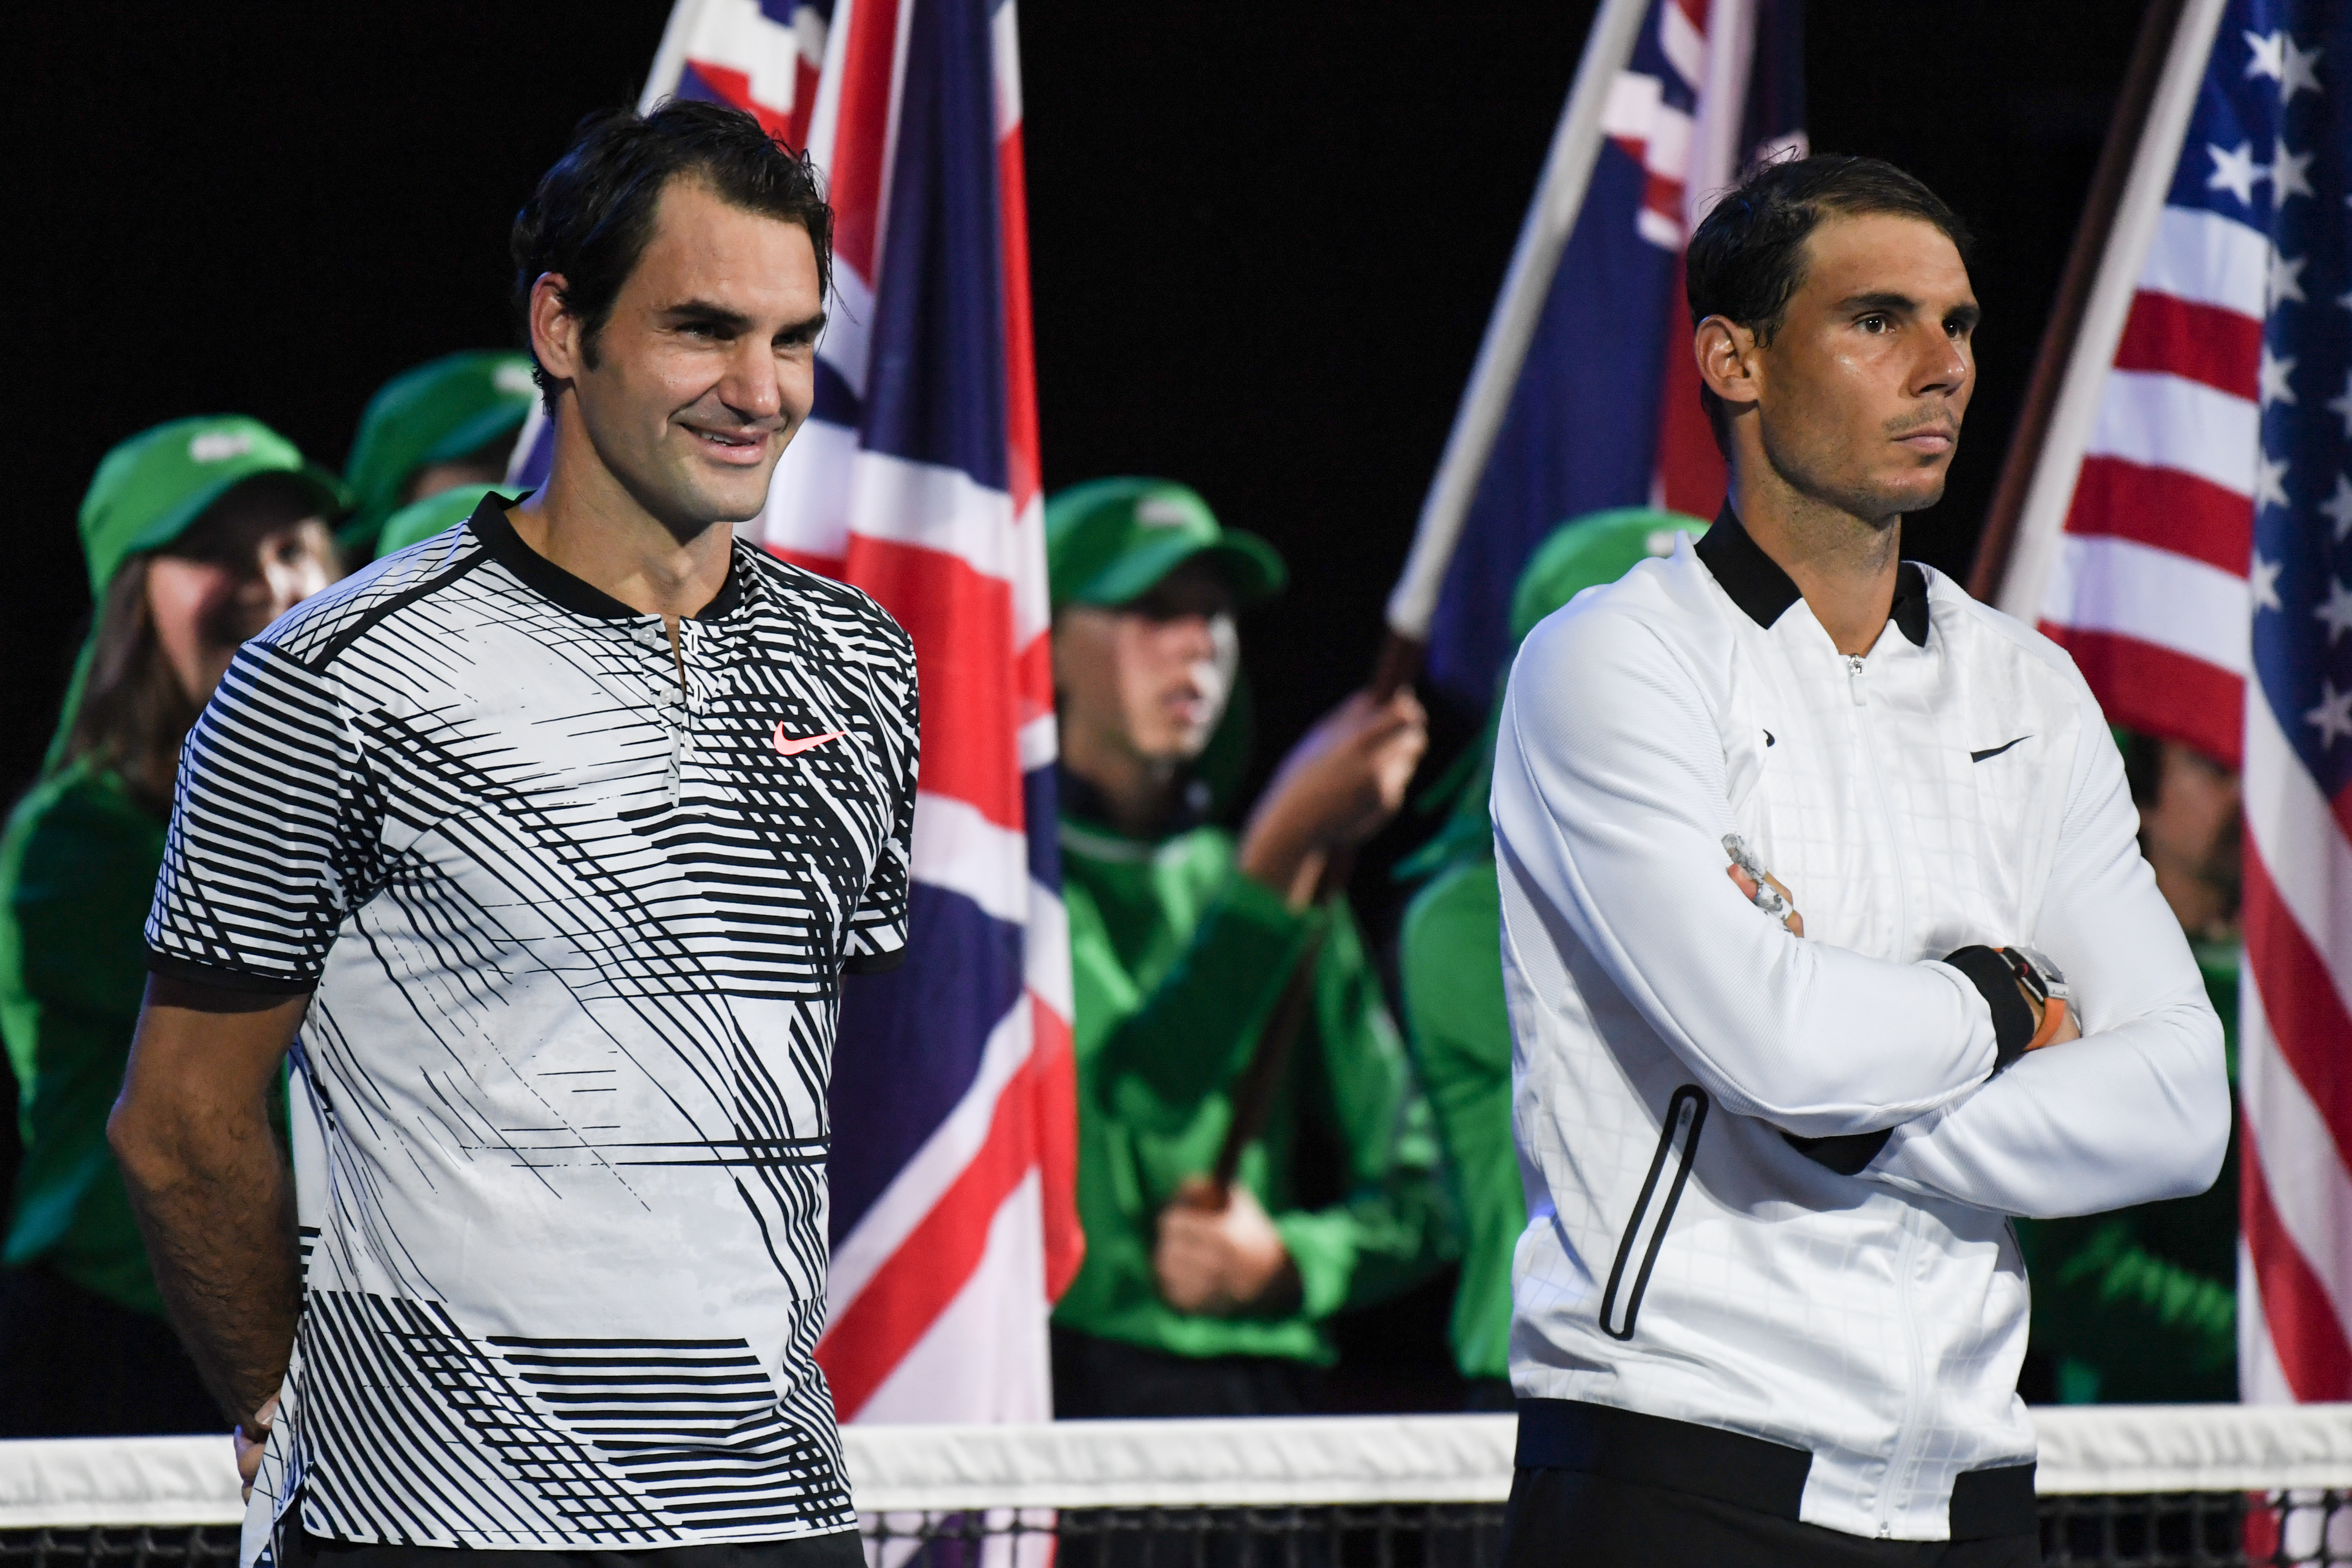 Roger Federer overcame Rafael Nadal 6-4, 3-6, 6-1, 3-6, 6-3 in a roller-coaster of a final in last year's Australian Open.